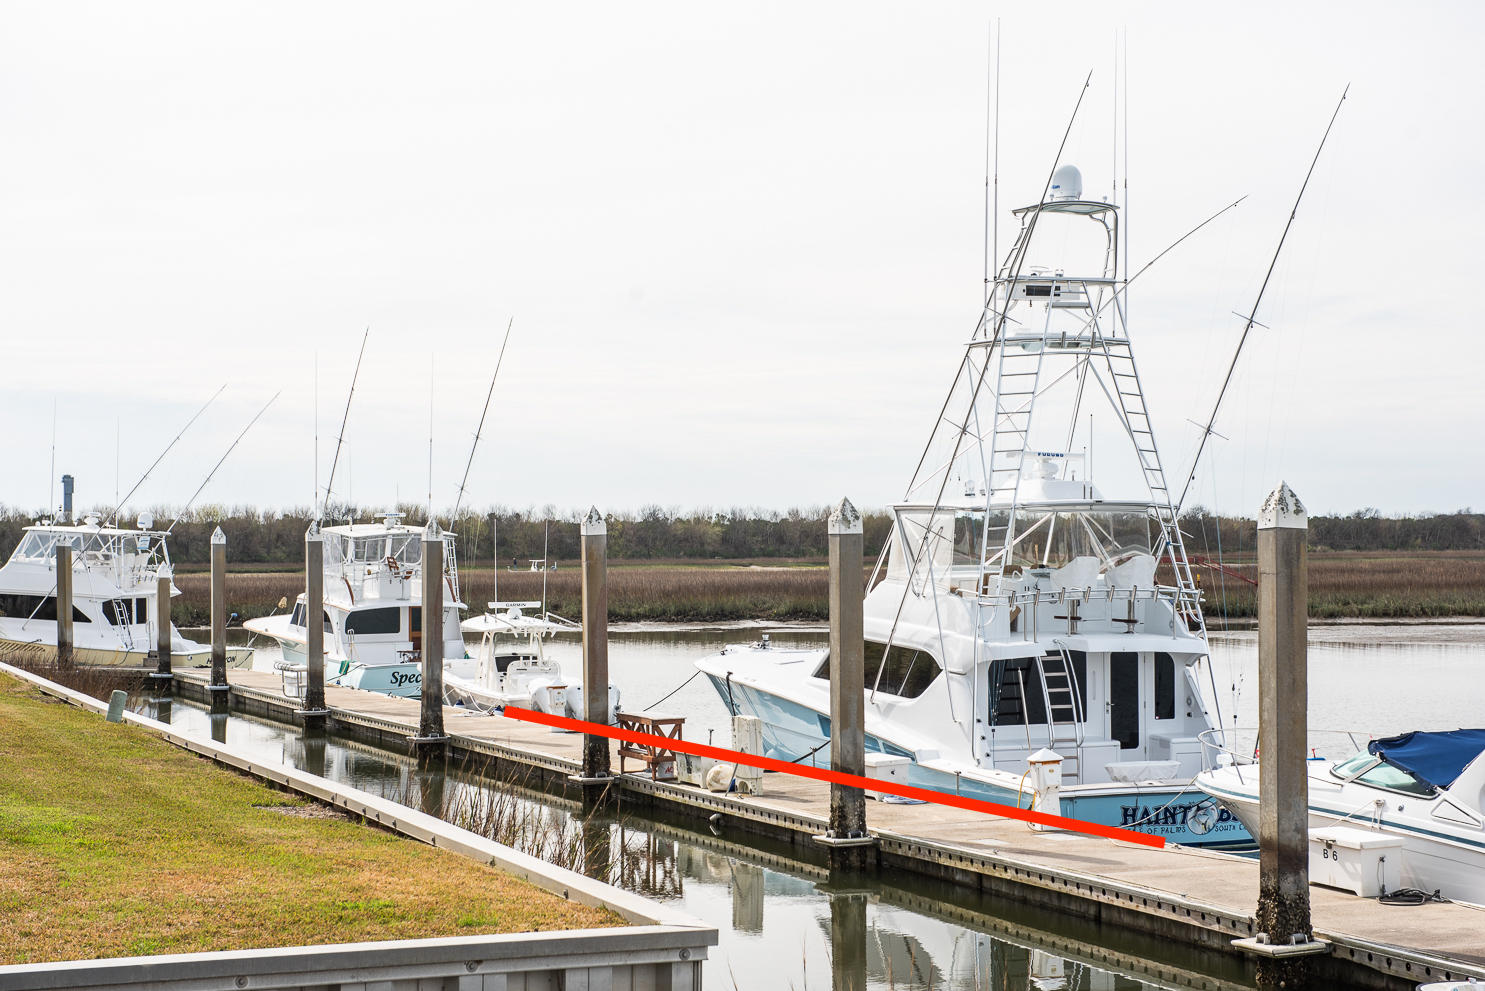 Tolers Cove Homes For Sale - B-4 & B-5 Tolers Cove Marina 70ft + Home, Mount Pleasant, SC - 43